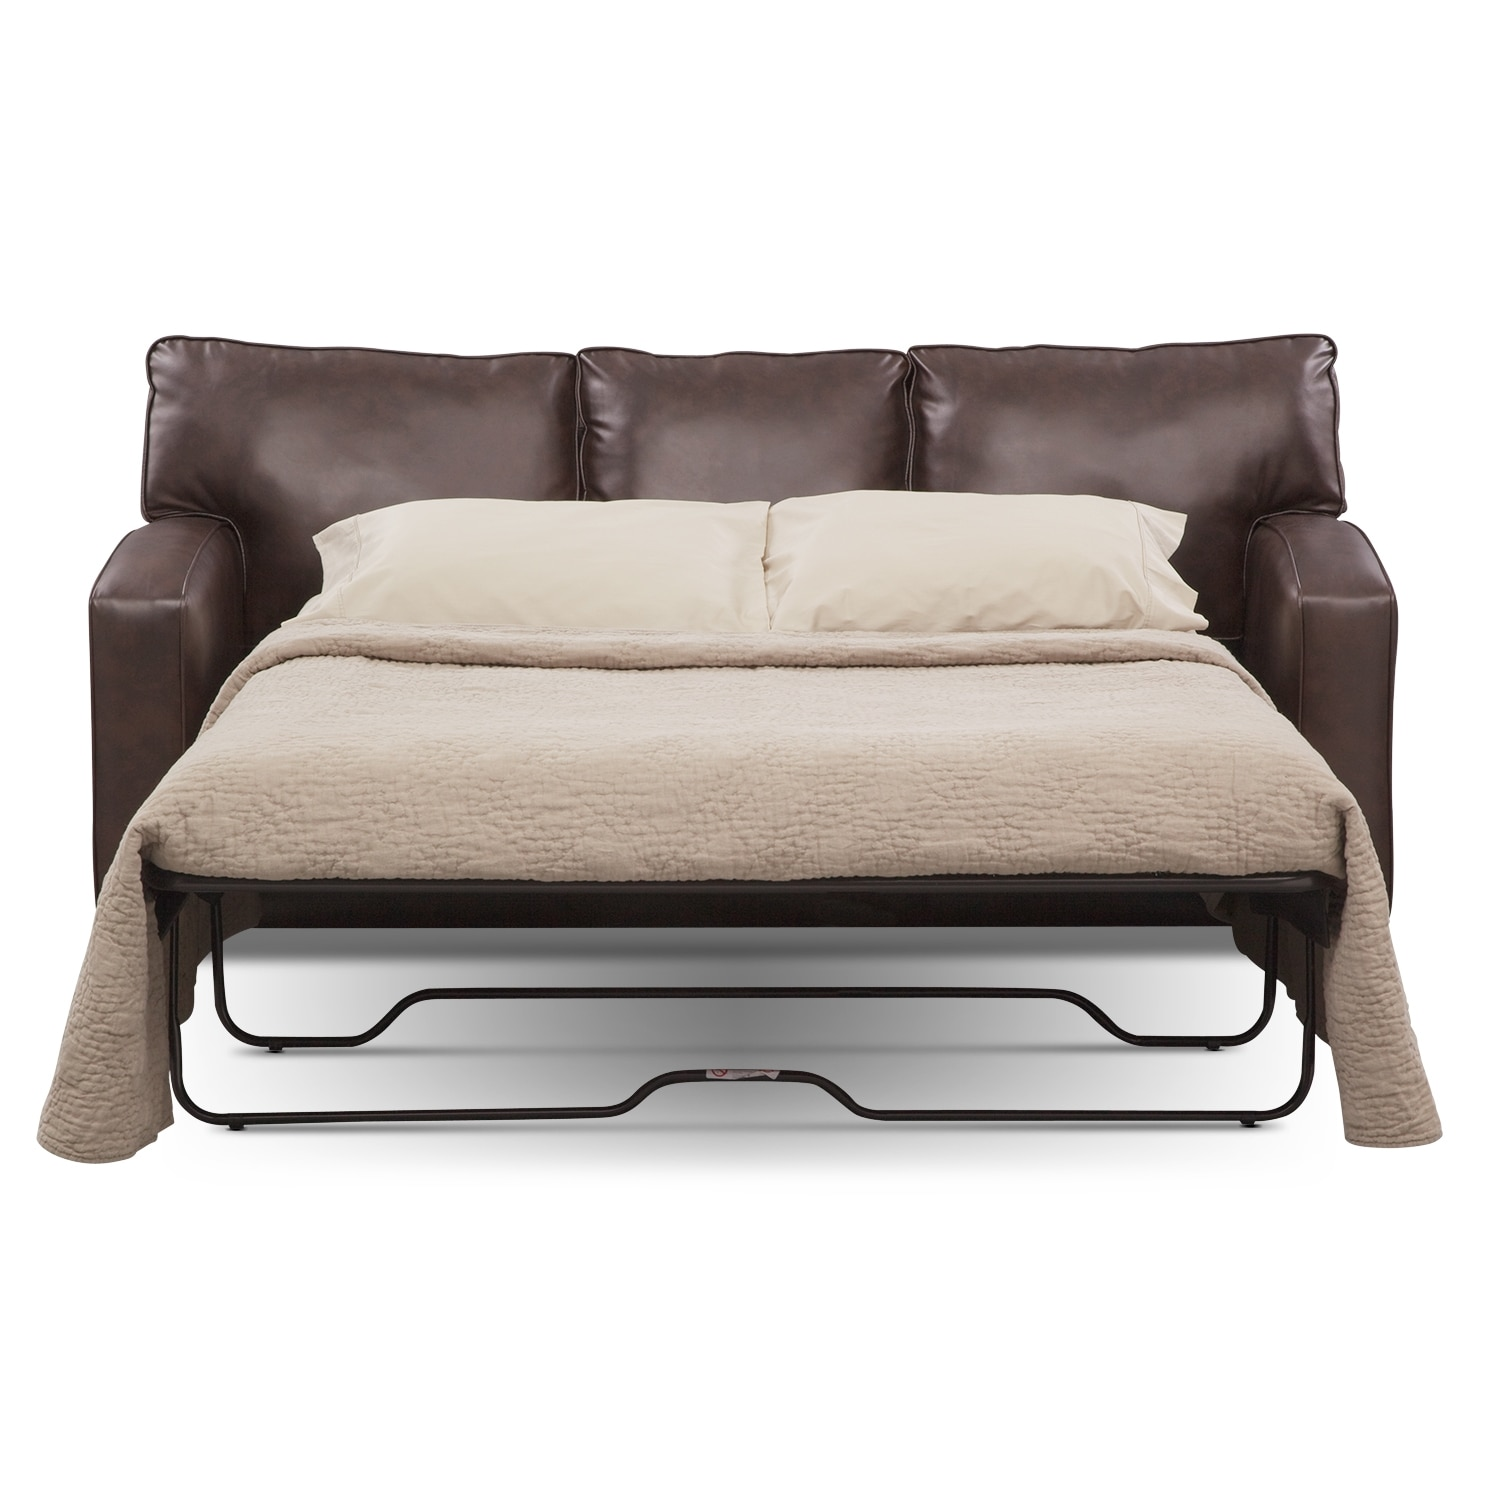 Brookline queen innerspring sleeper sofa value city for Sofa bed value city furniture